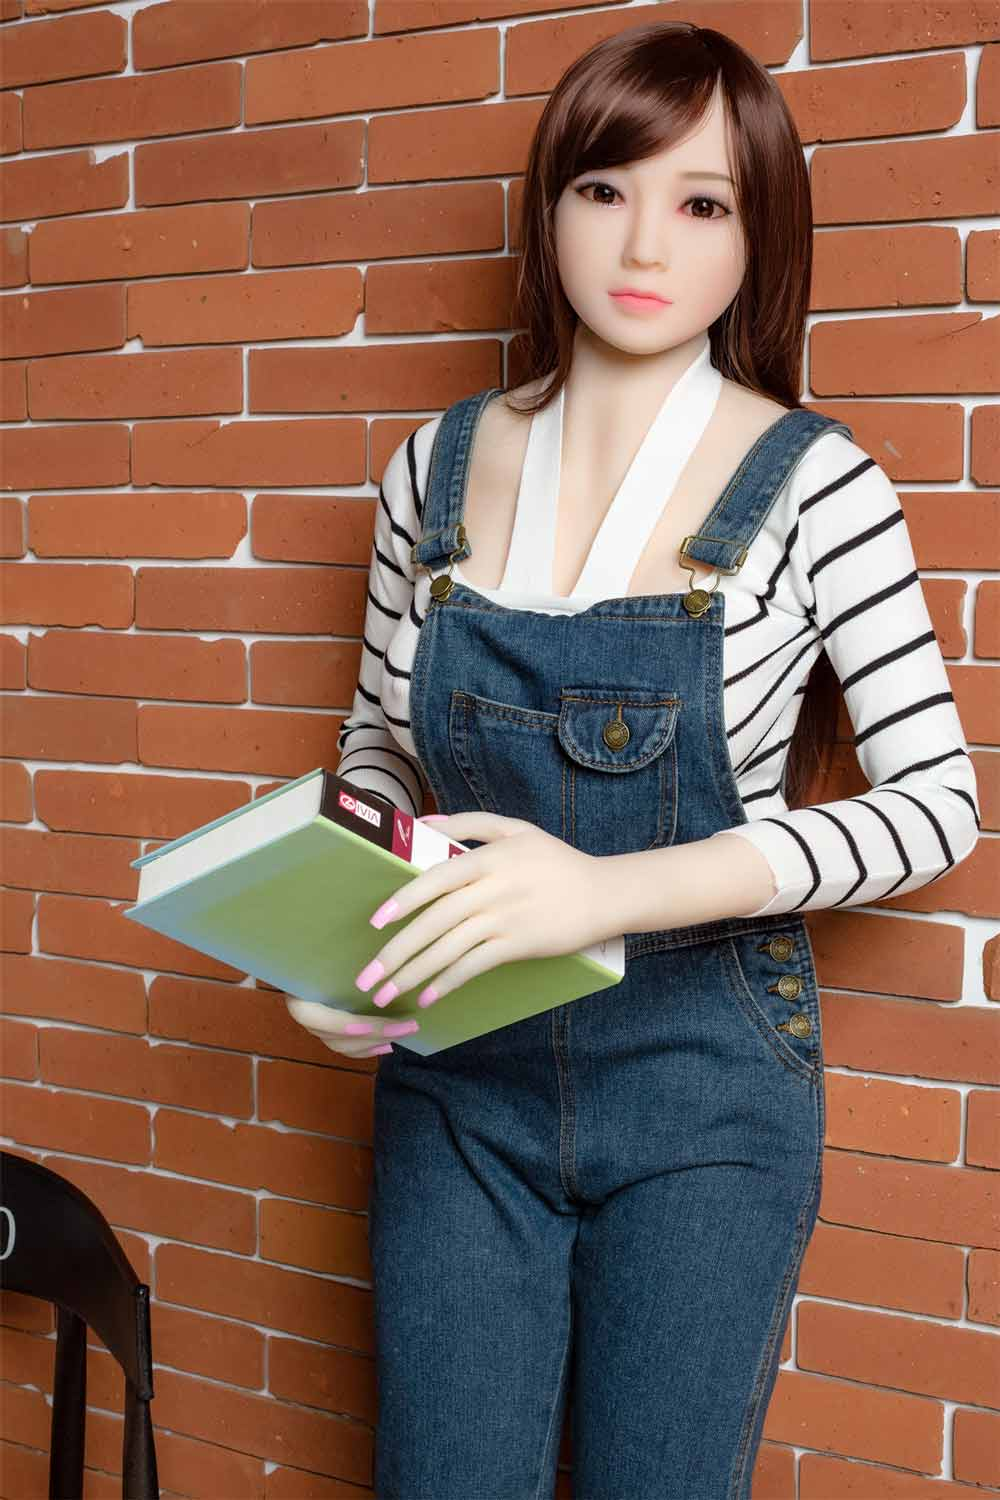 Sex doll with book in both hands